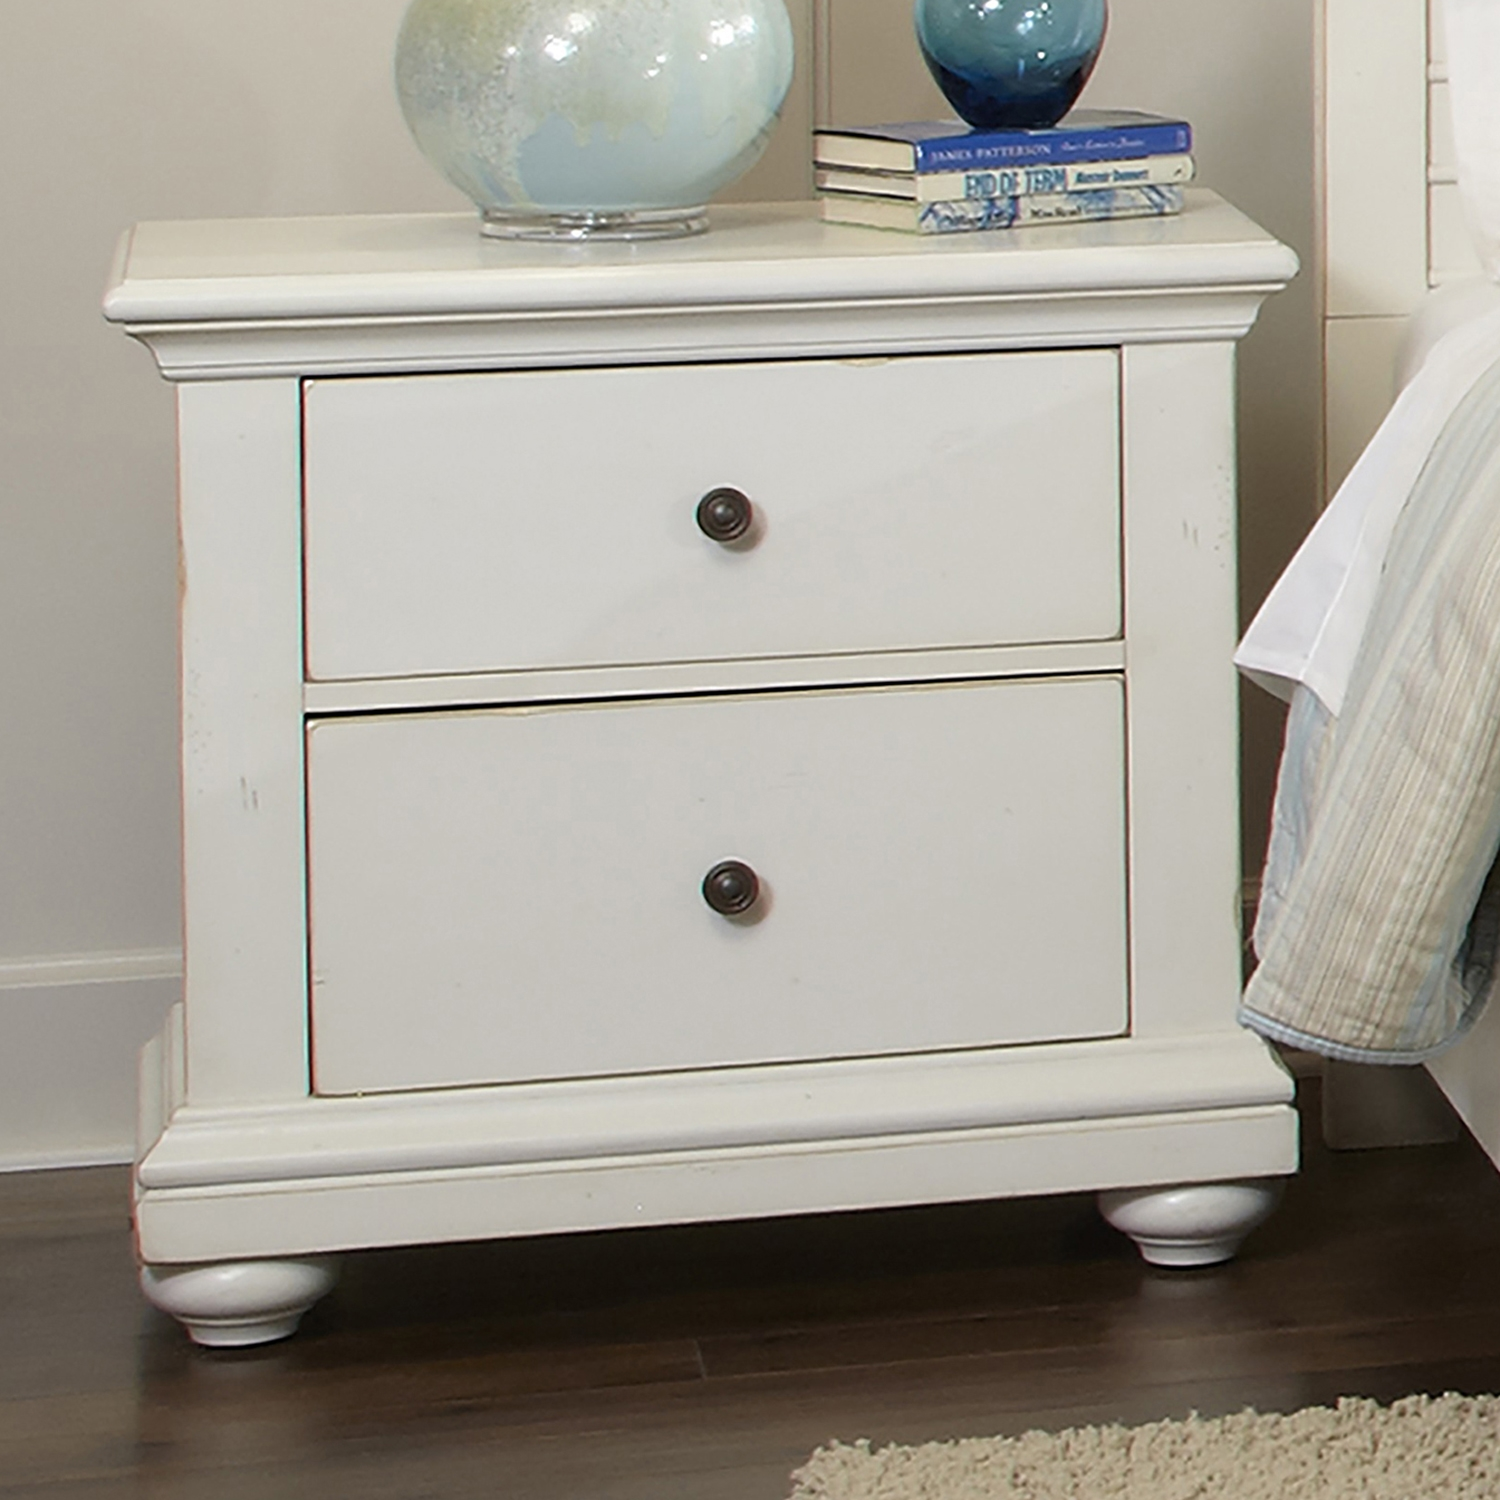 Pathways 2-Drawer Nightstand in Antique White